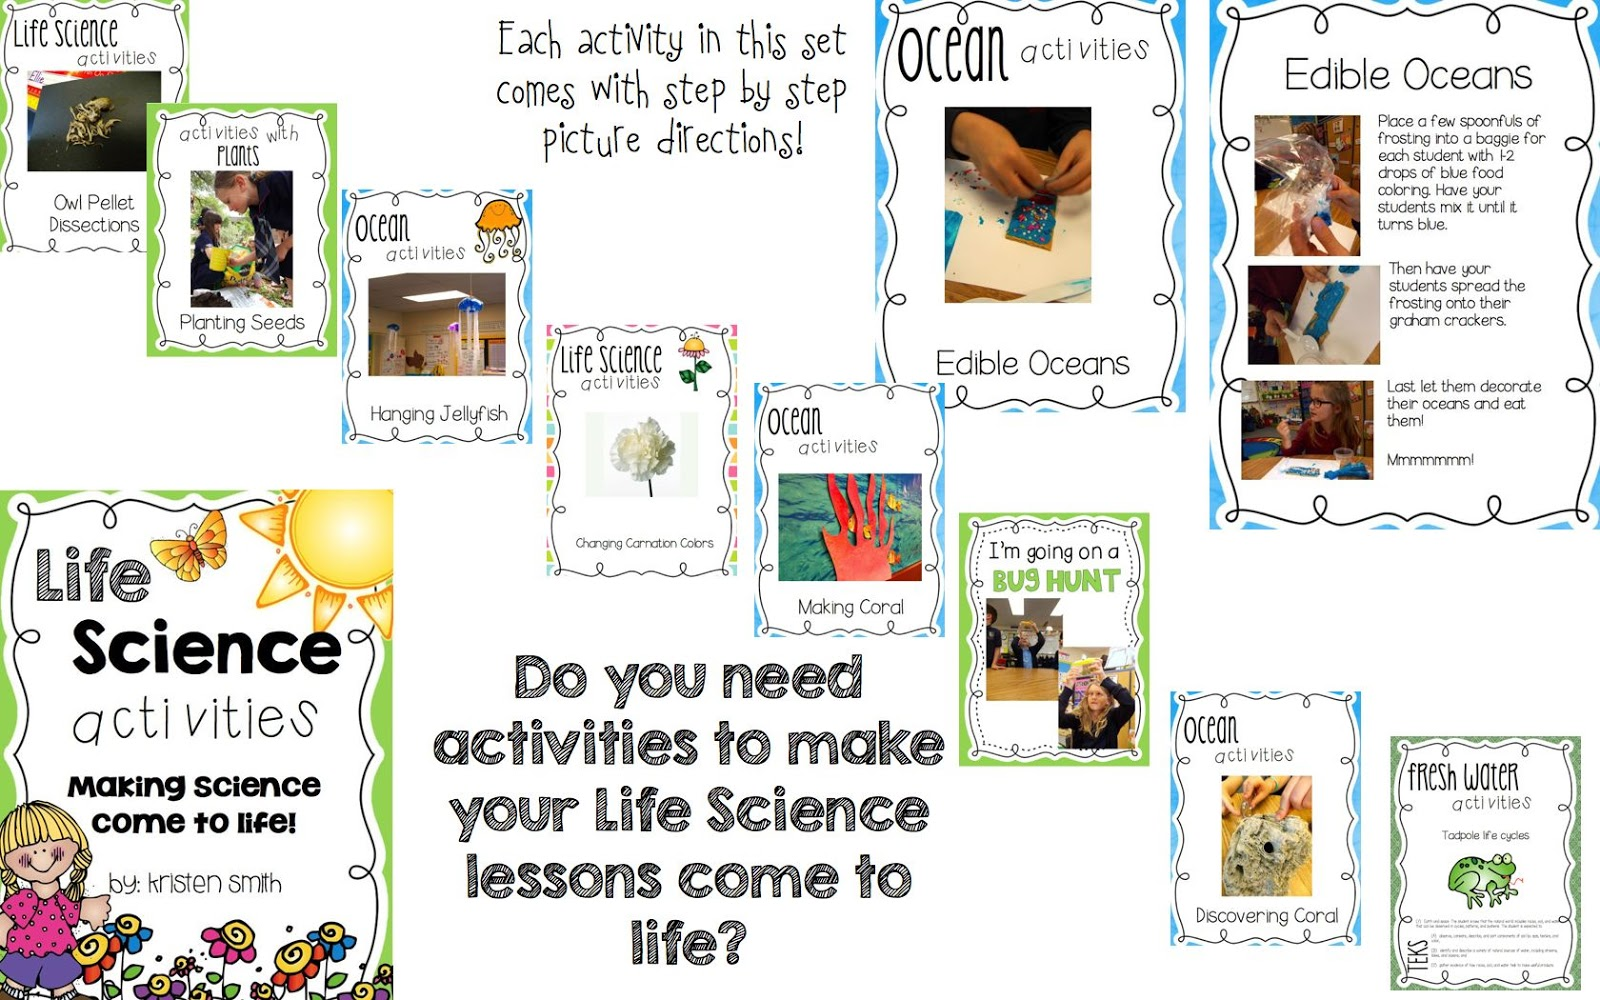 First grade life science worksheets what do animals eat 1 - First Grade Life Science Worksheets What Do Animals Eat 1 59